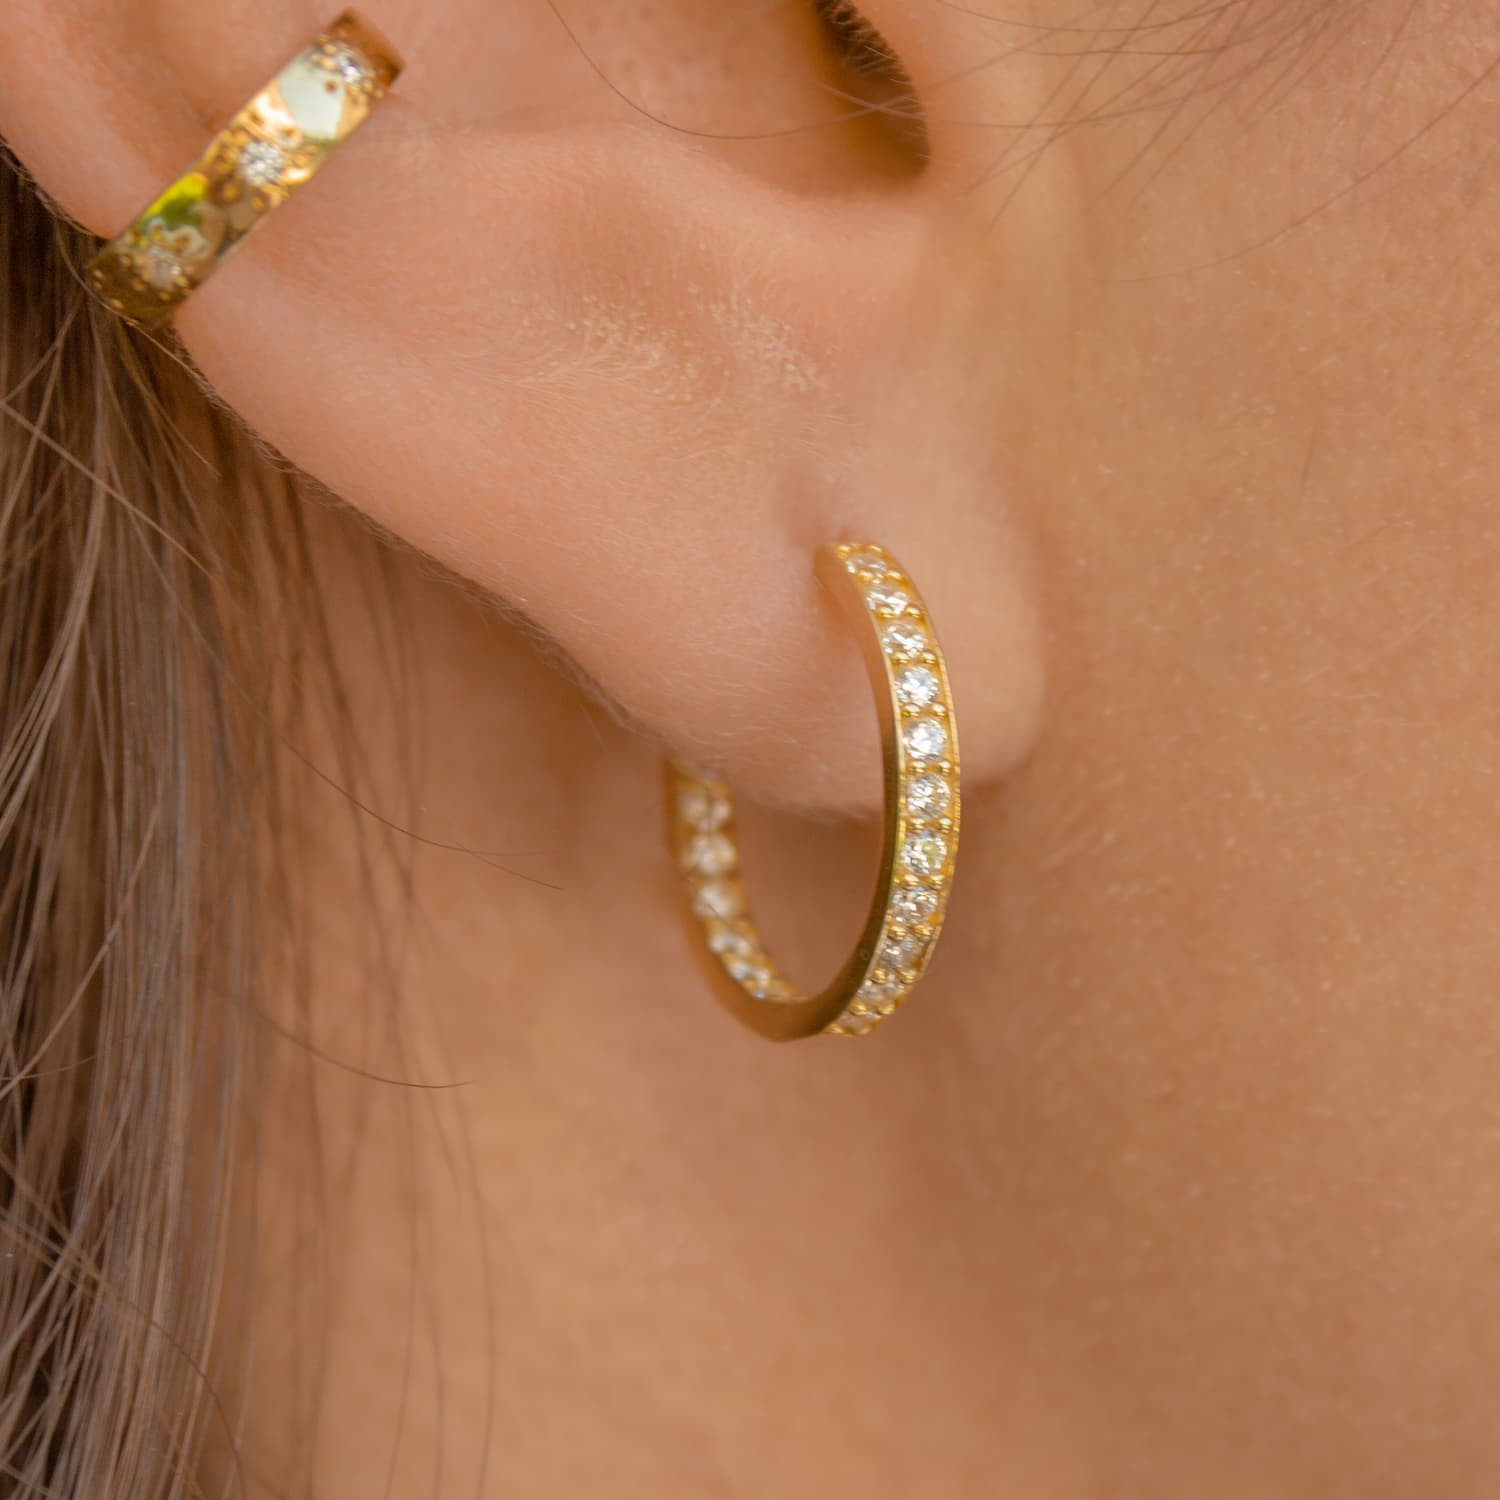 MAXI DOUBLE SIDED STONE RING EARRINGS